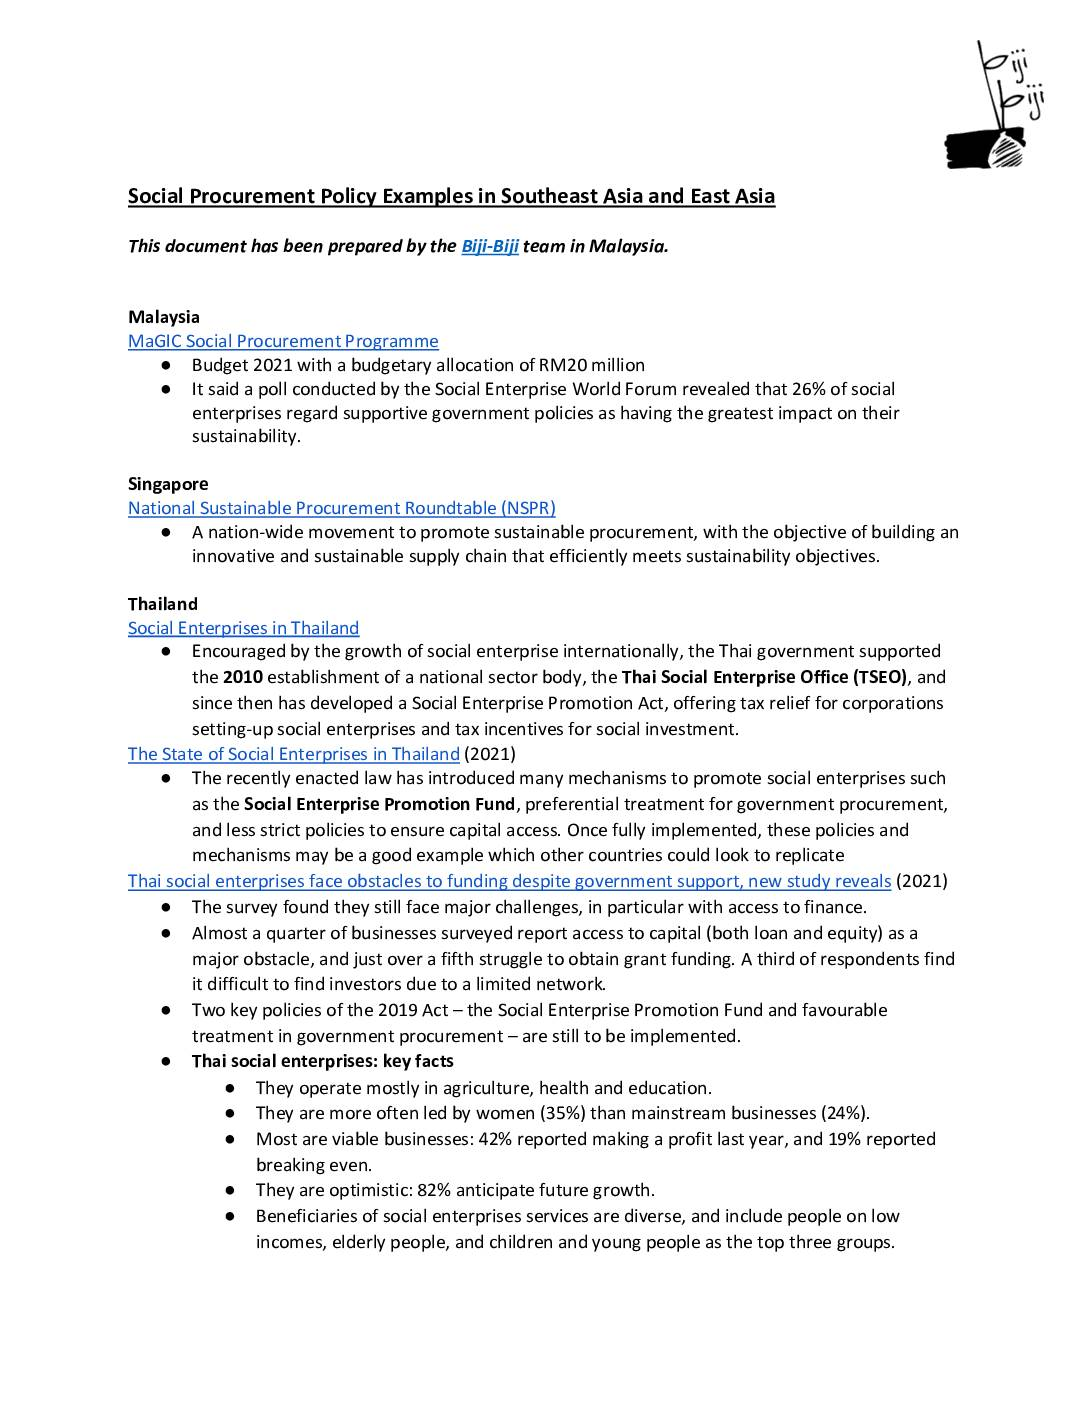 Social Procurement Policy Examples in South East and East Asia